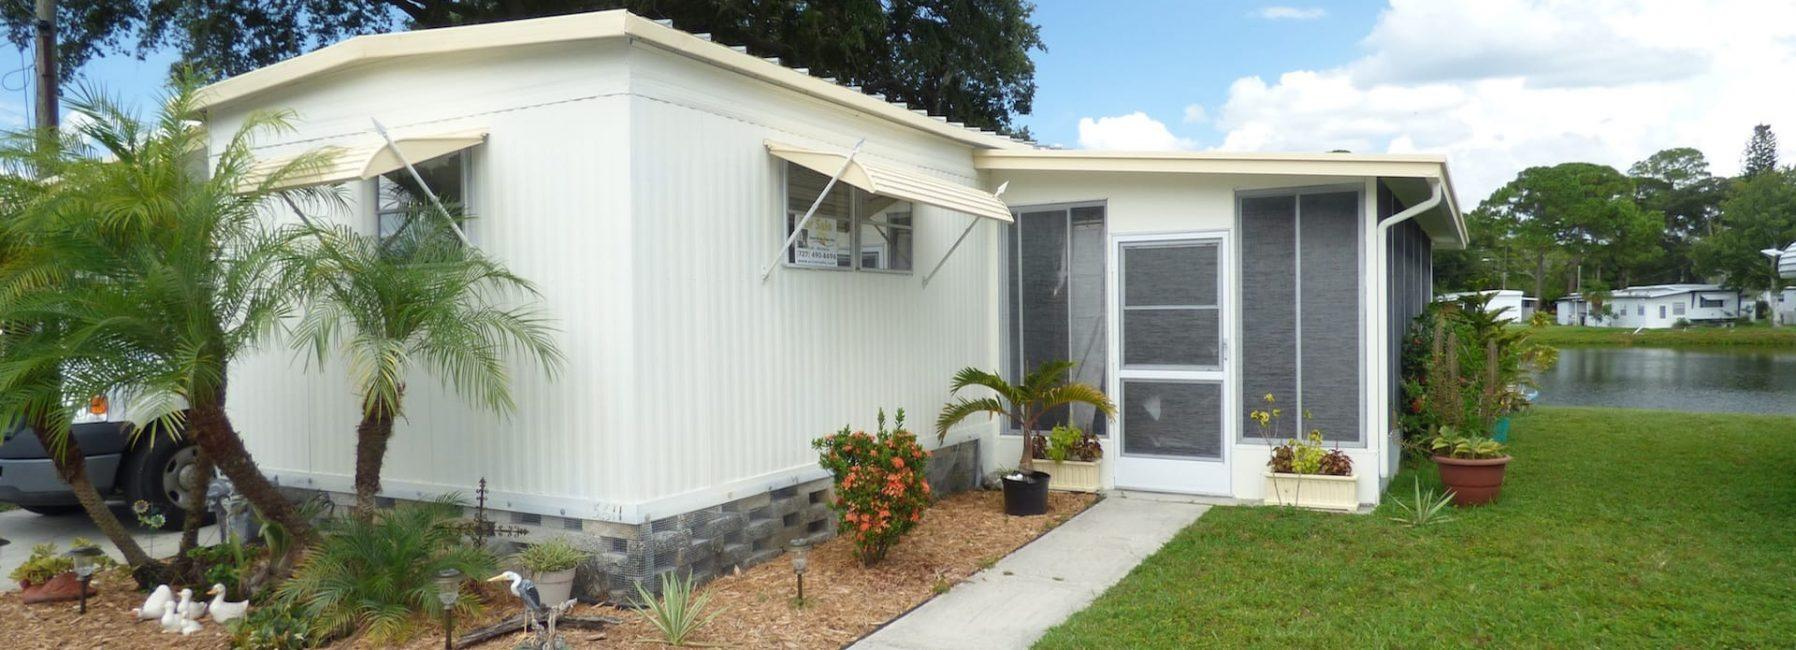 Used Mobile Home For Sale - Saint Petersburg, FL